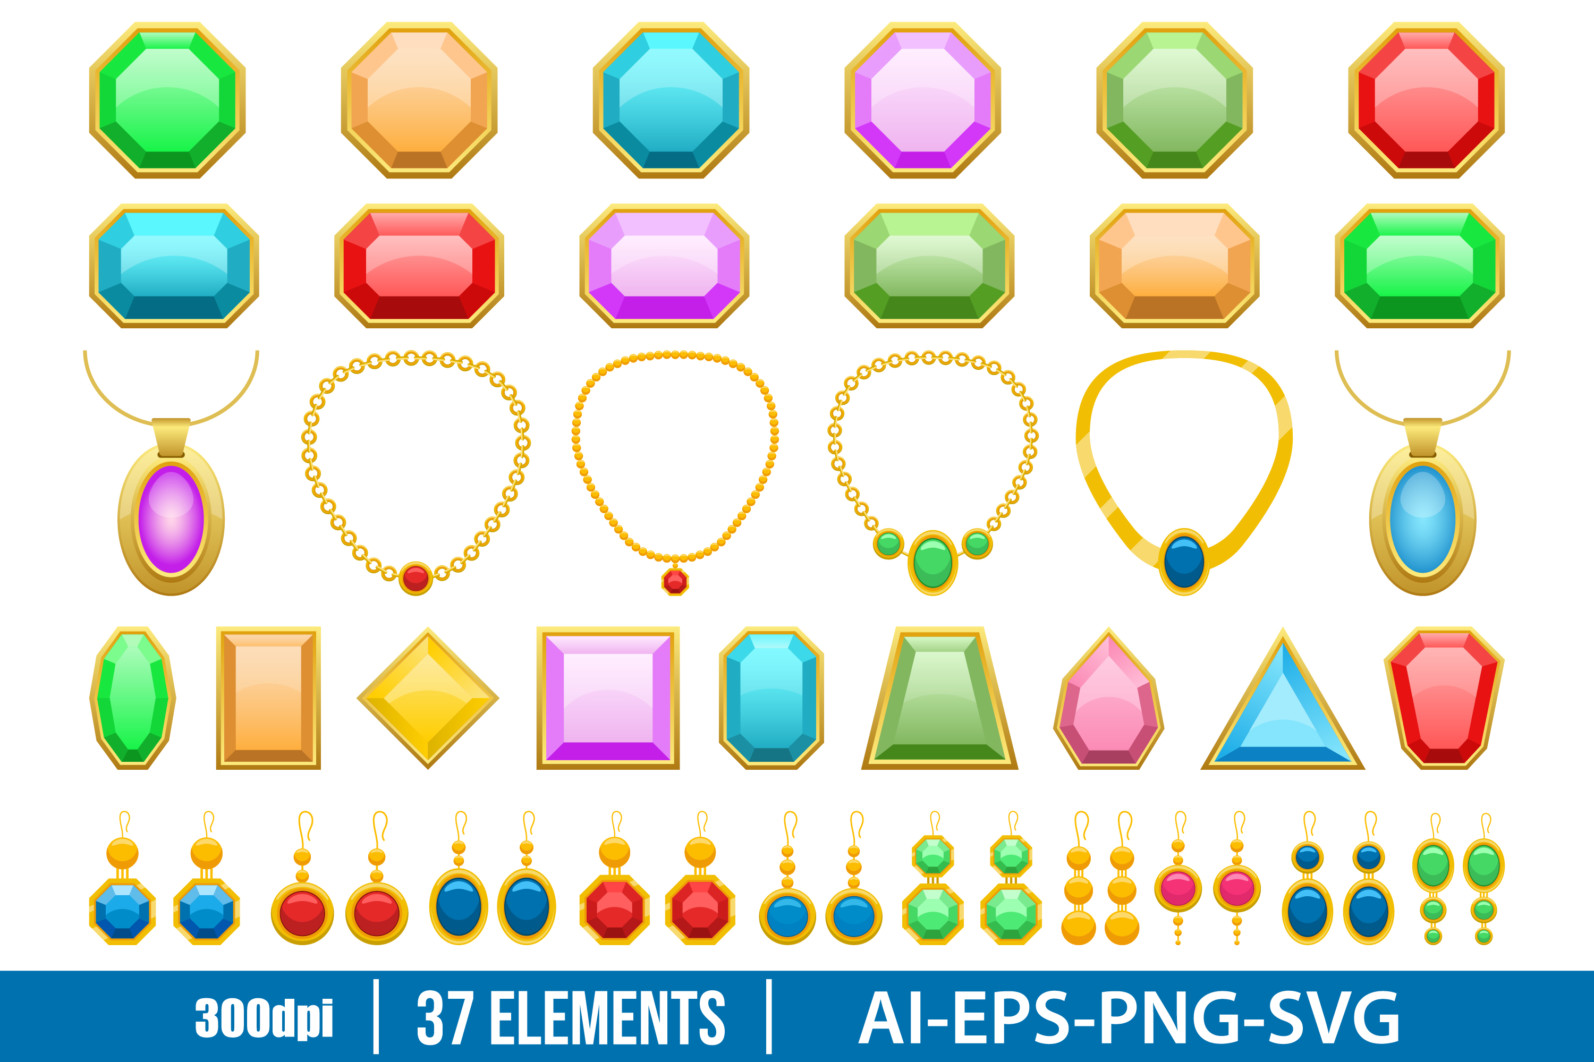 Jewelry clipart vector design illustration. Vector Clipart Print - JEWELRY scaled -